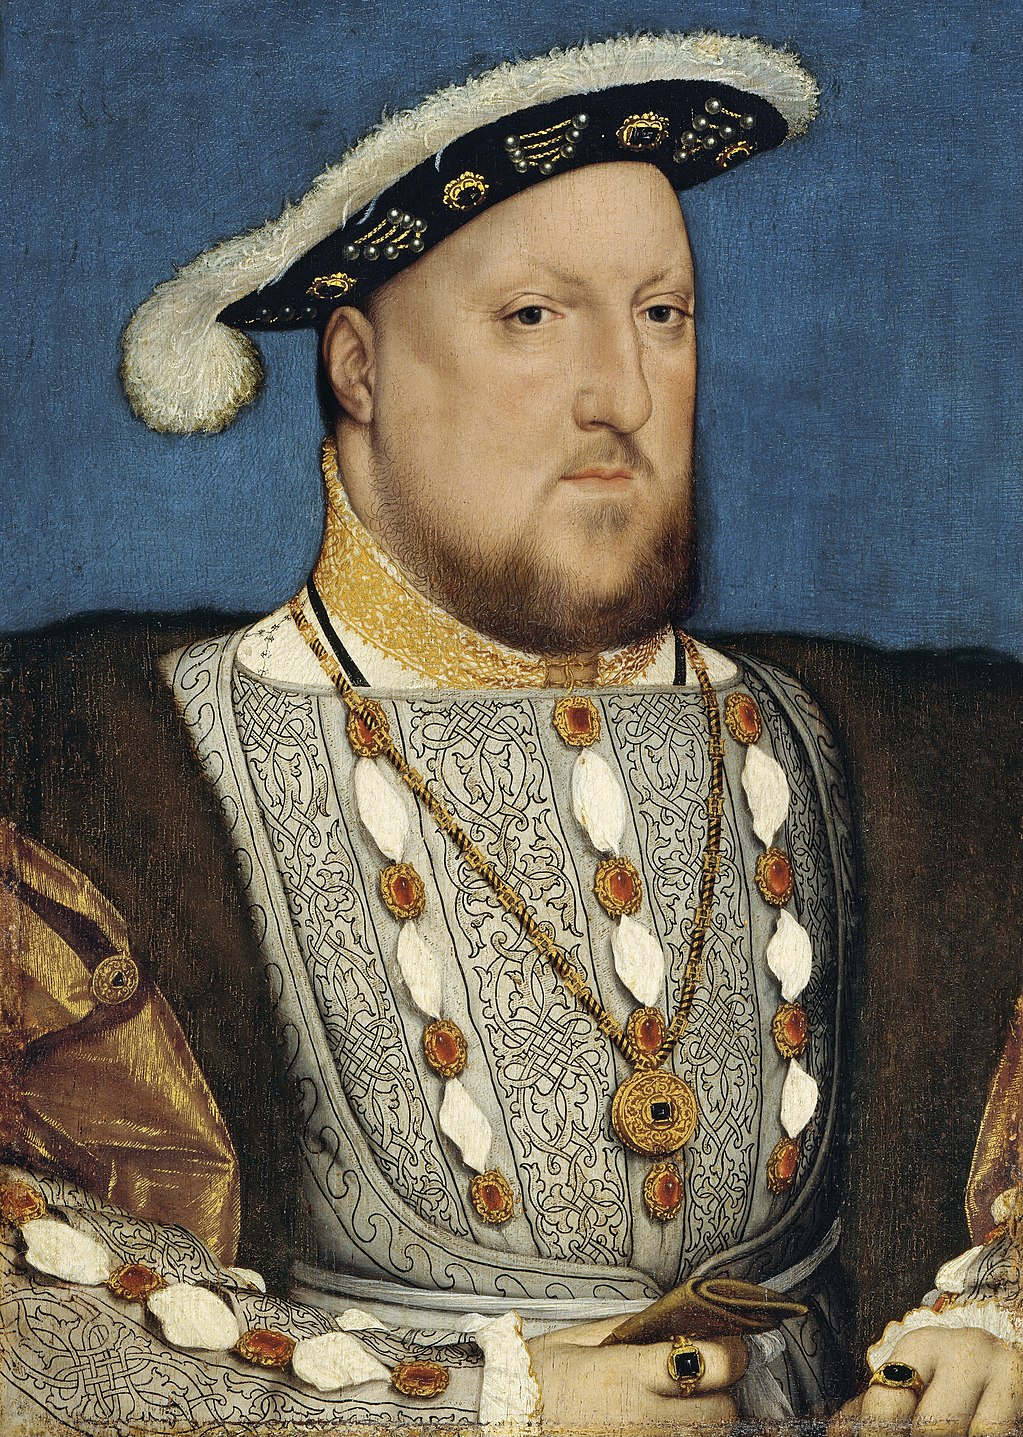 Henry VIII, by Hans Holbein, the Younger, circa 1537. Public domain.